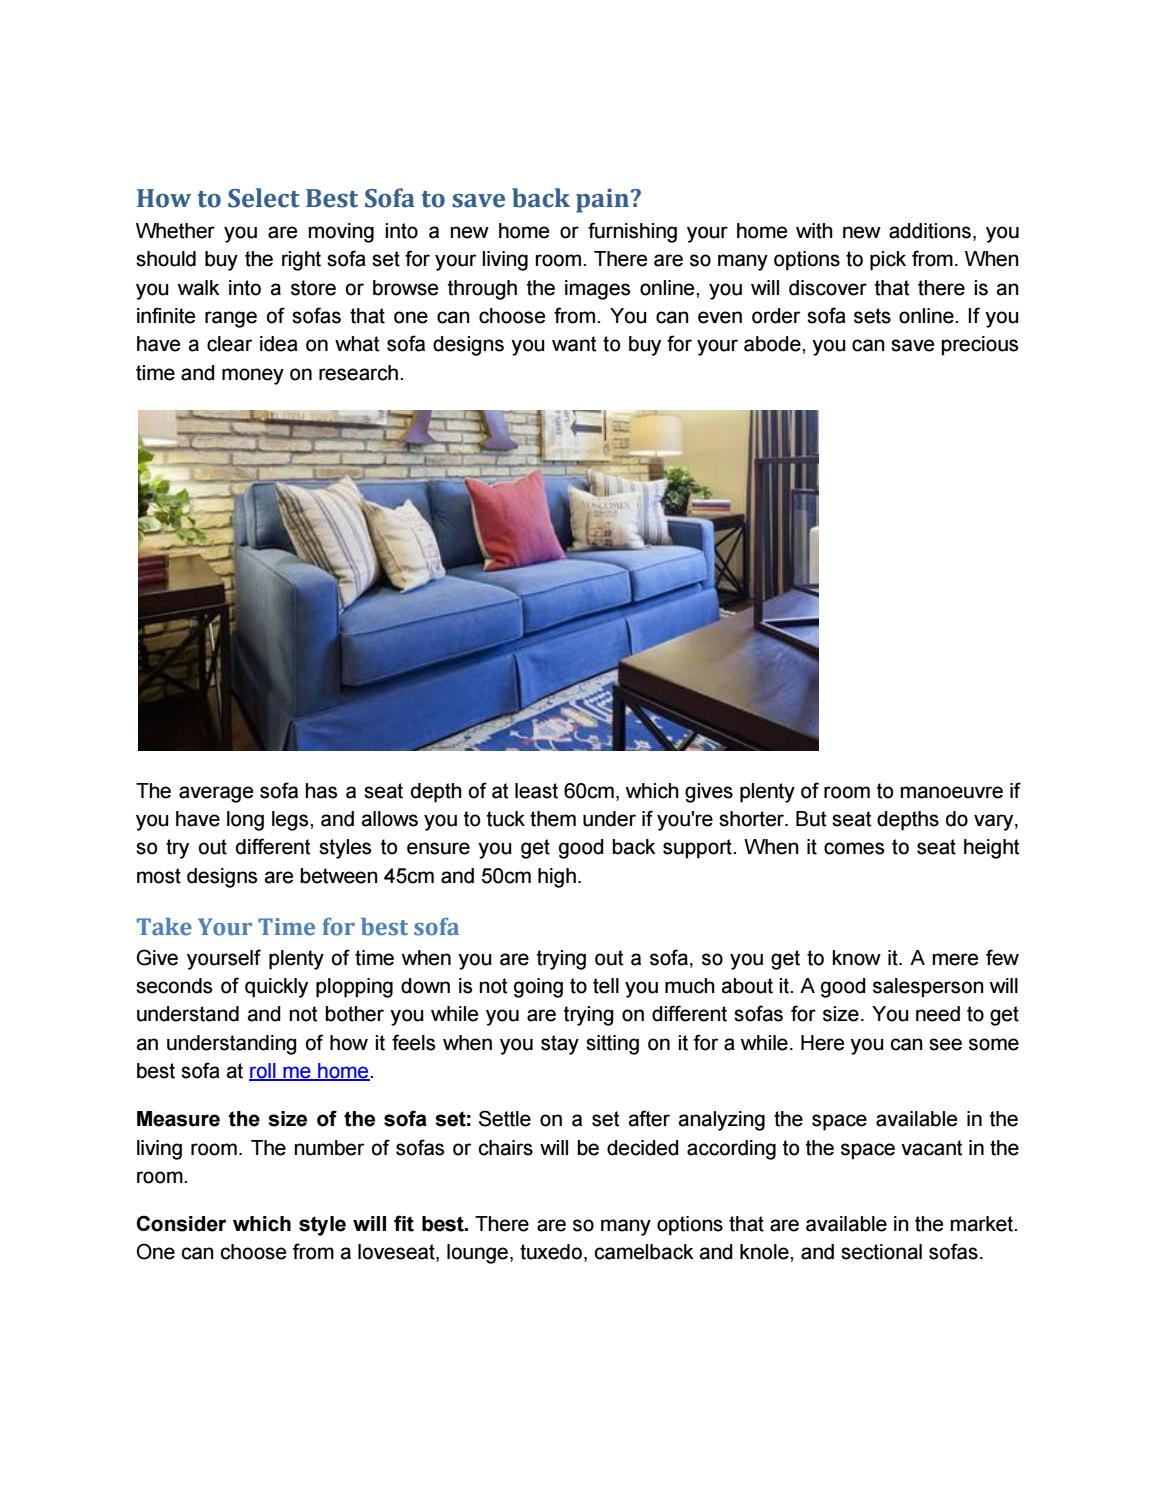 Select Best Sofa To Save Back Pain